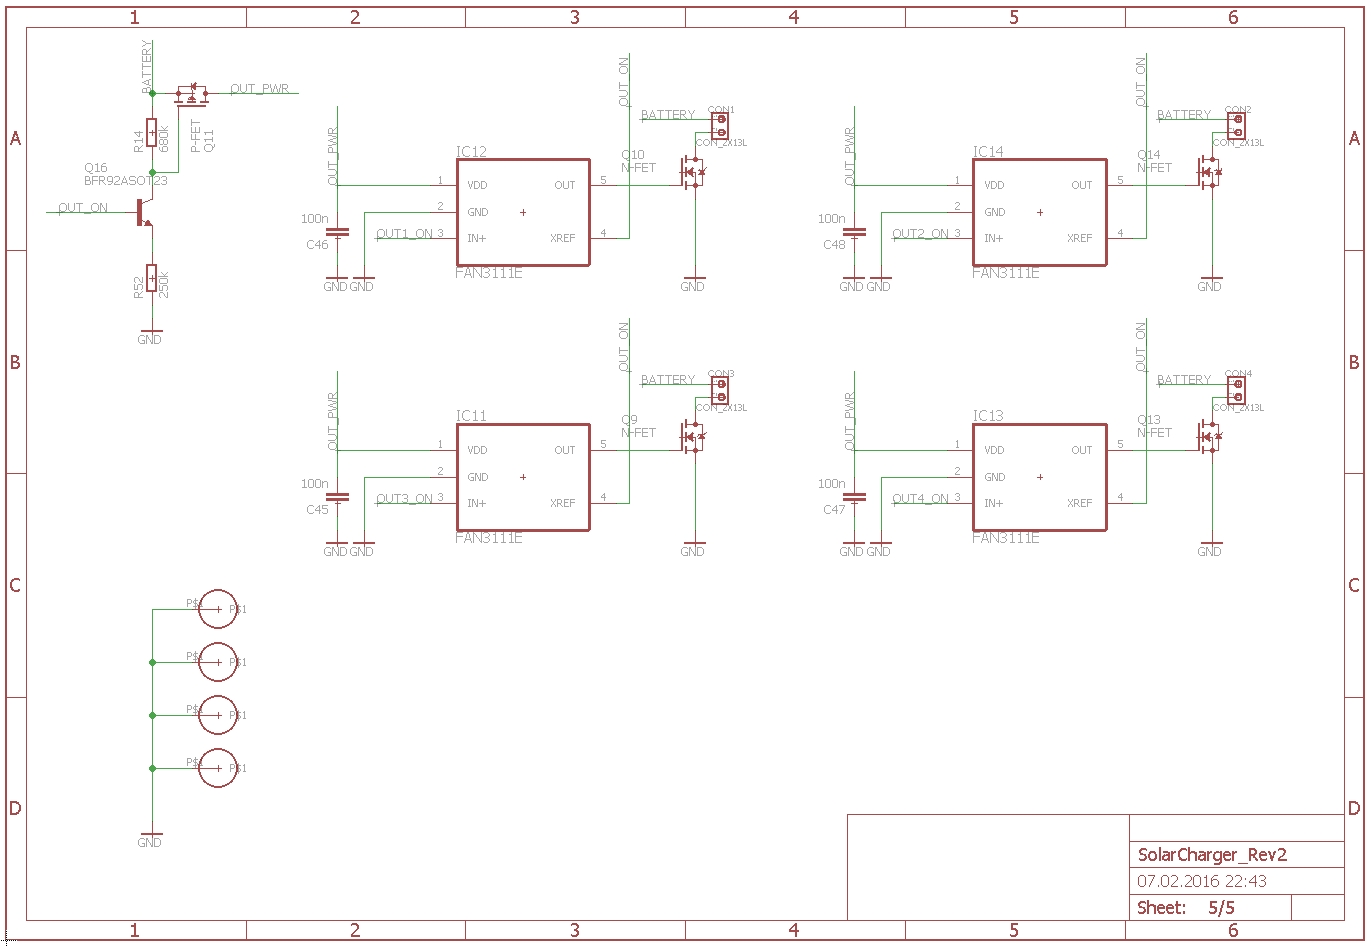 Mppt Solar Charger Design Soldernerd Charge Controller Circuit Diagram Solarchargerschematic5 Usb Charging Ports